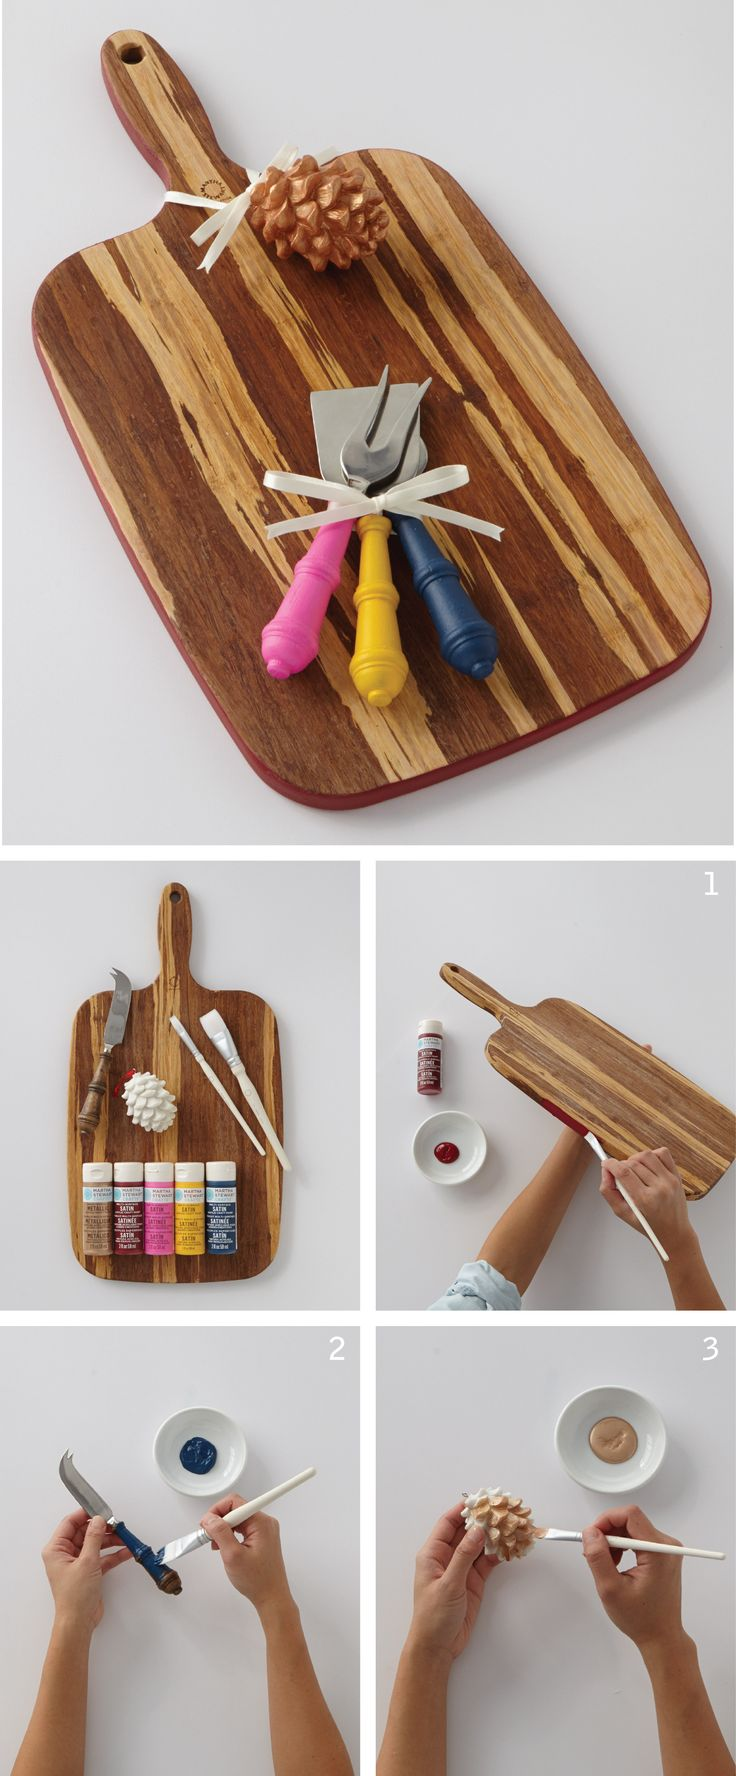 Painted Cheese Board, Knives, and Pinecone | Martha ...